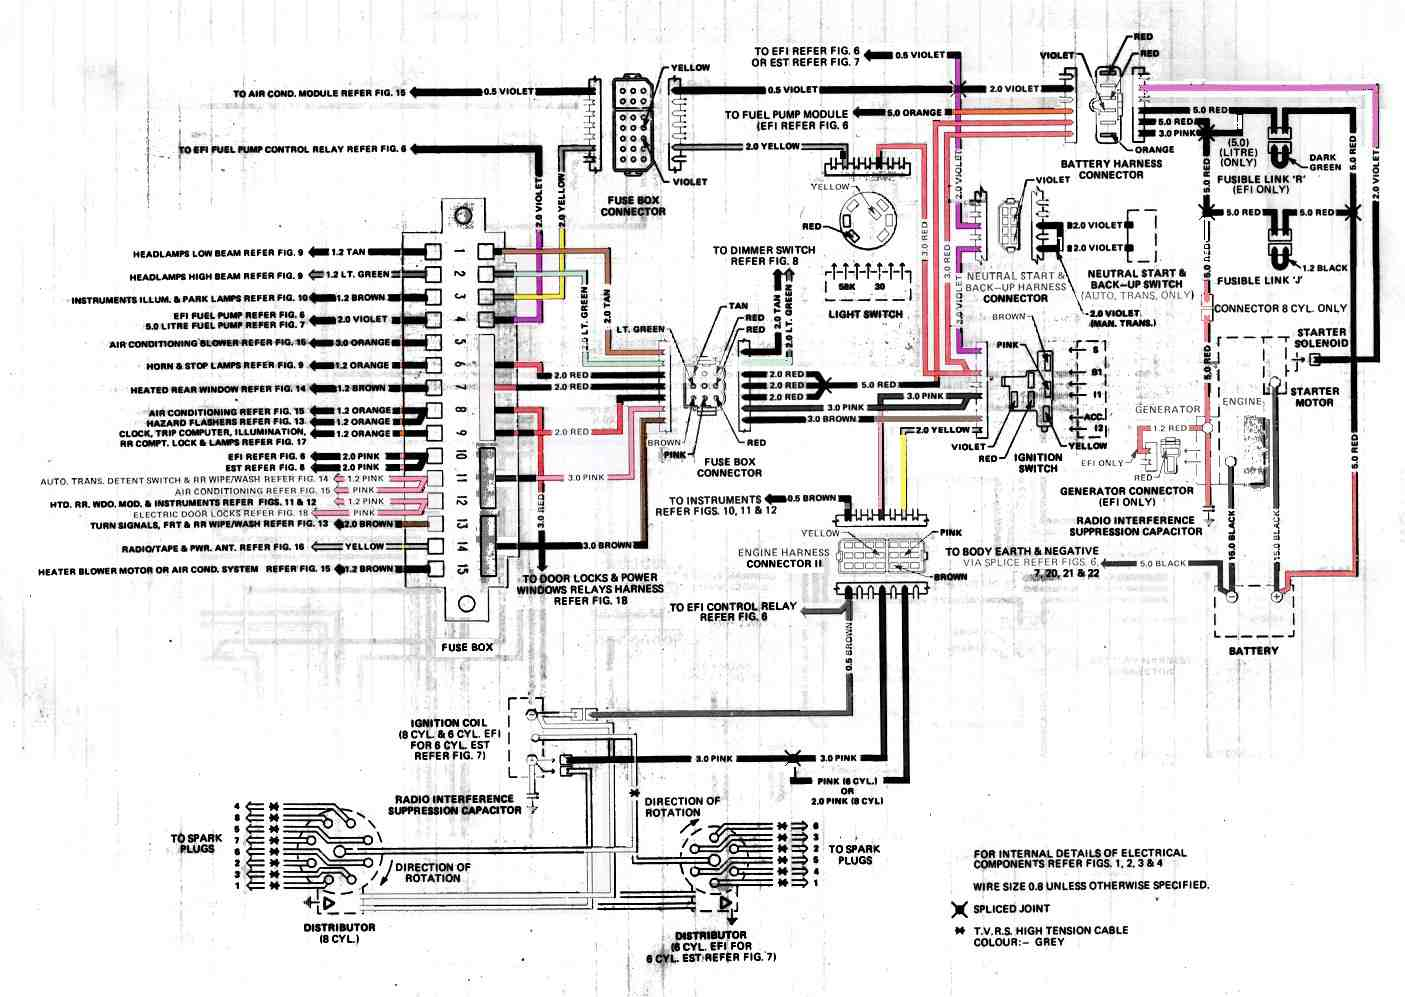 Holden Manuals Free Radio Wiring Diagram 1998 50th Anniversary F150 Array 2011 Cruze Owners Manual Pdf Download Rh Appelfreelance Com